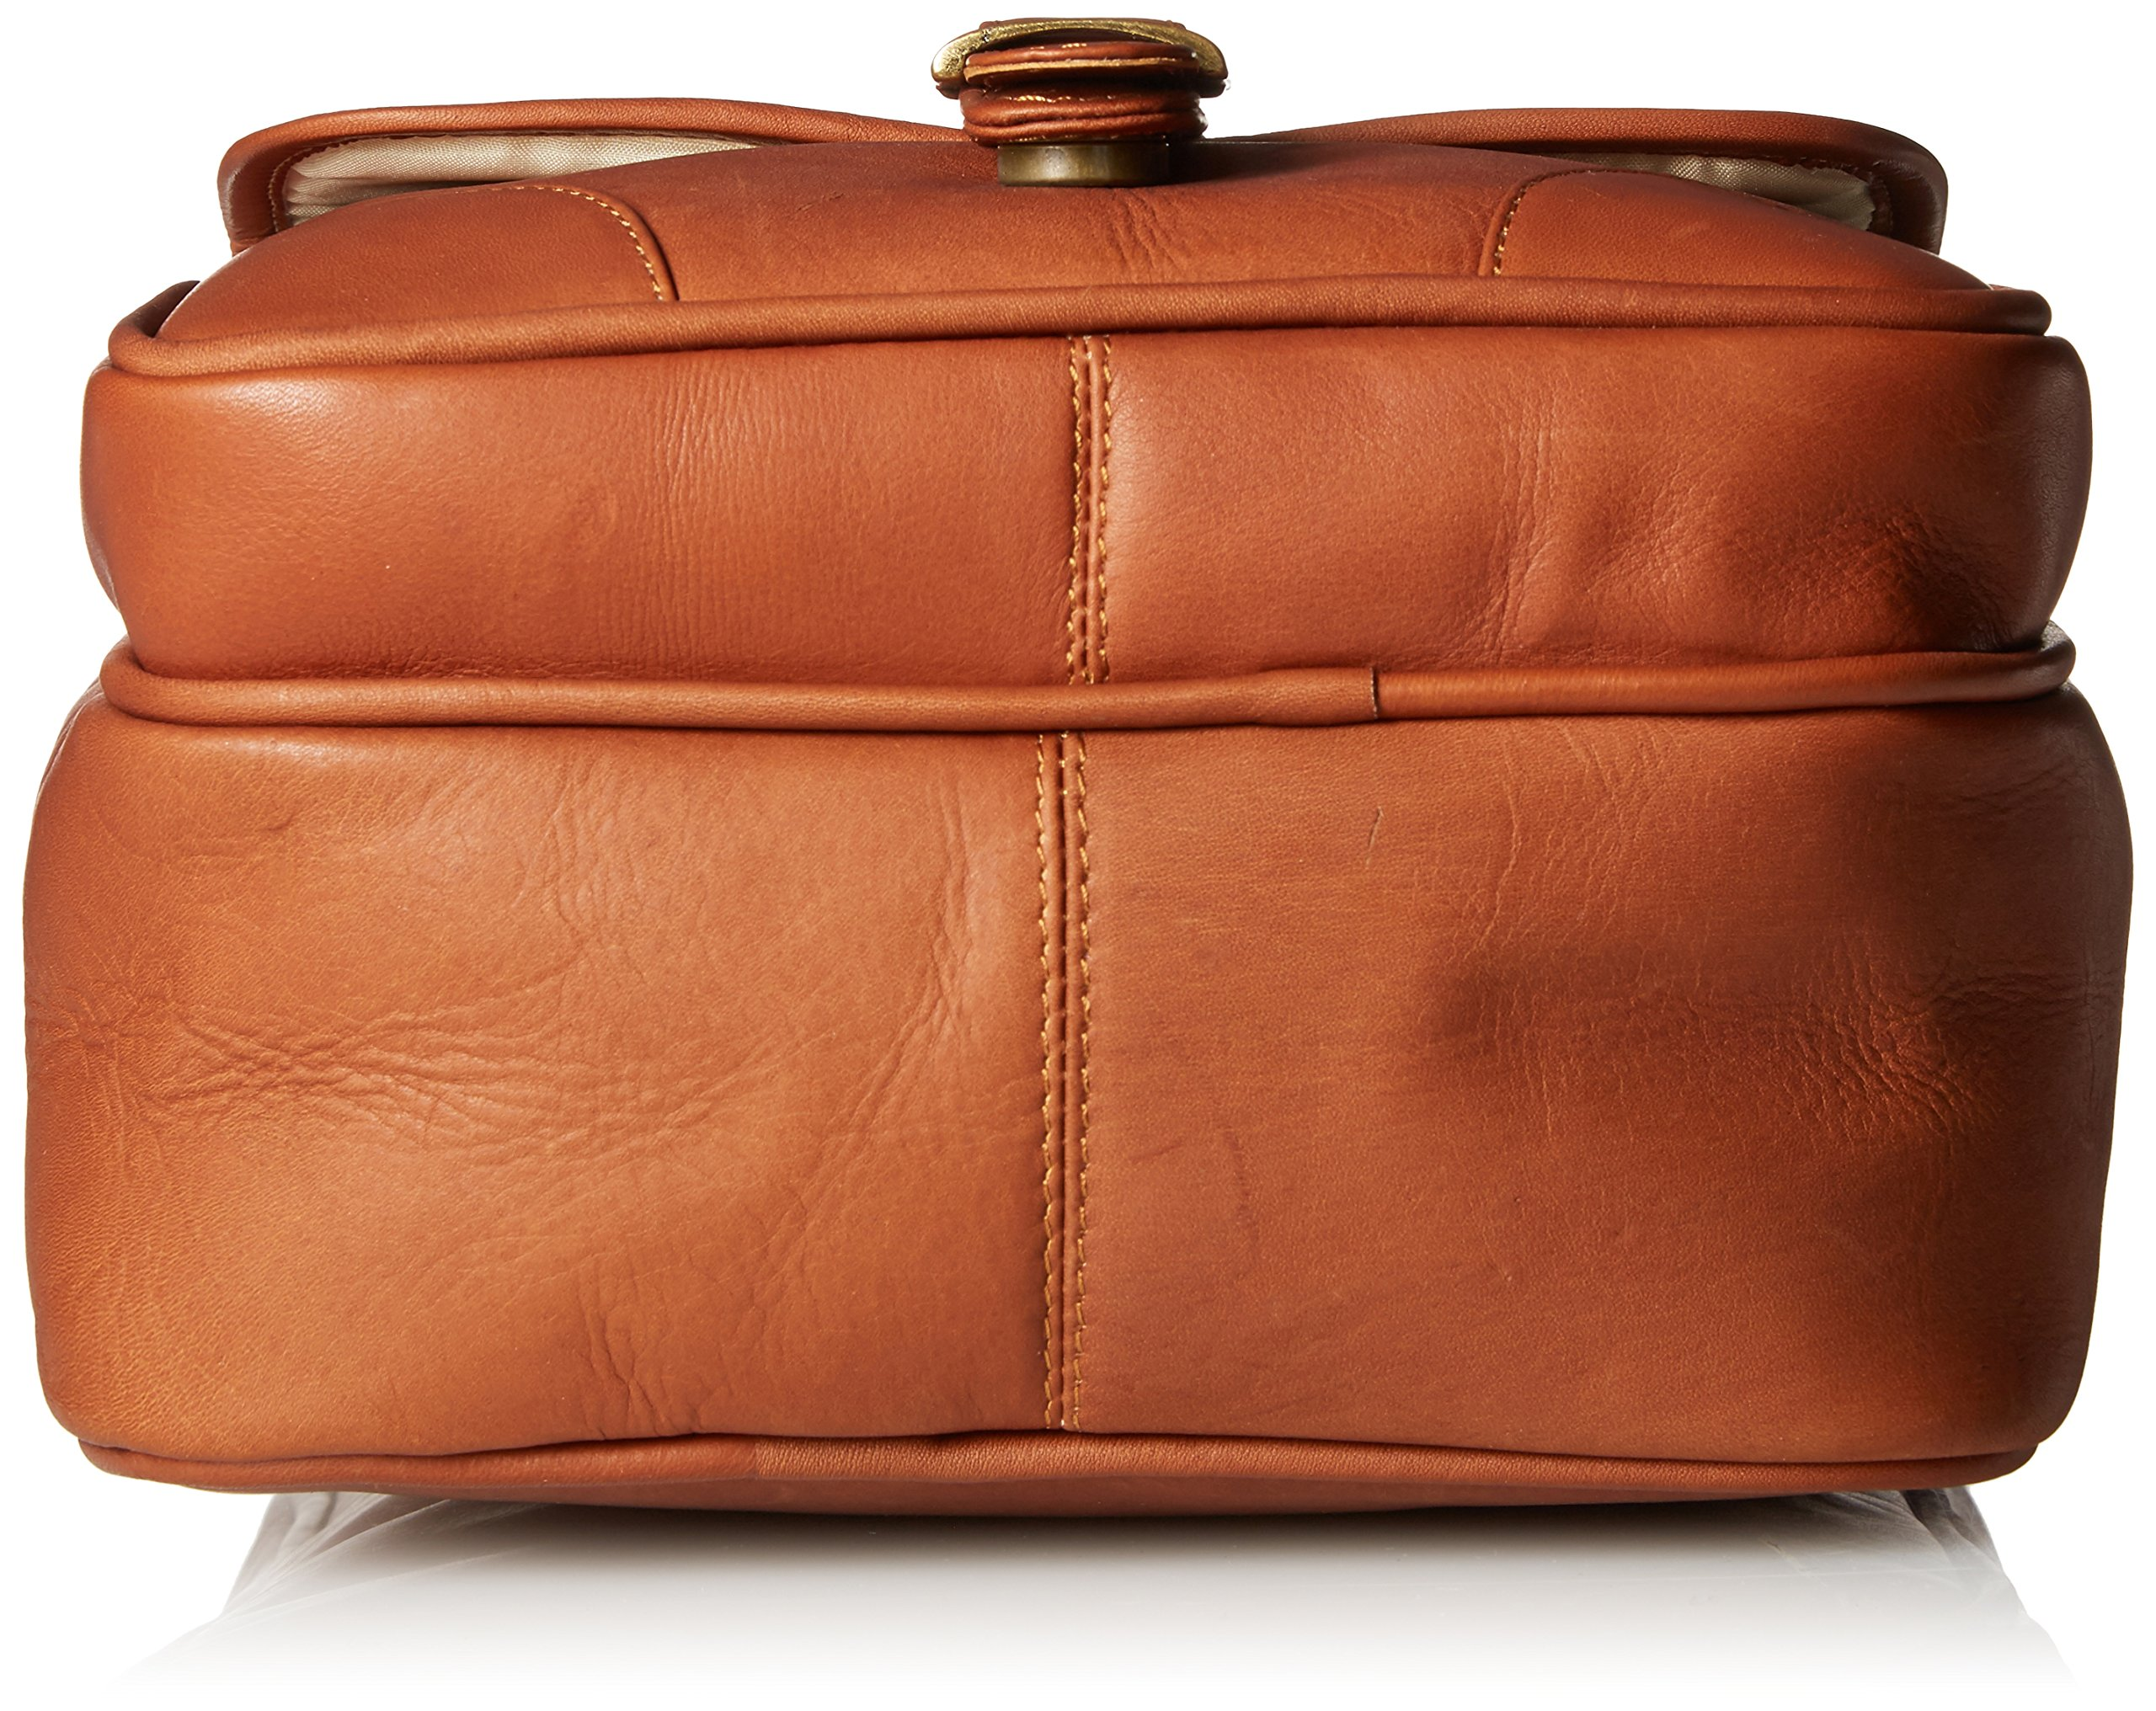 Claire Chase Upright Golf Shoe Bag, Saddle by ClaireChase (Image #4)